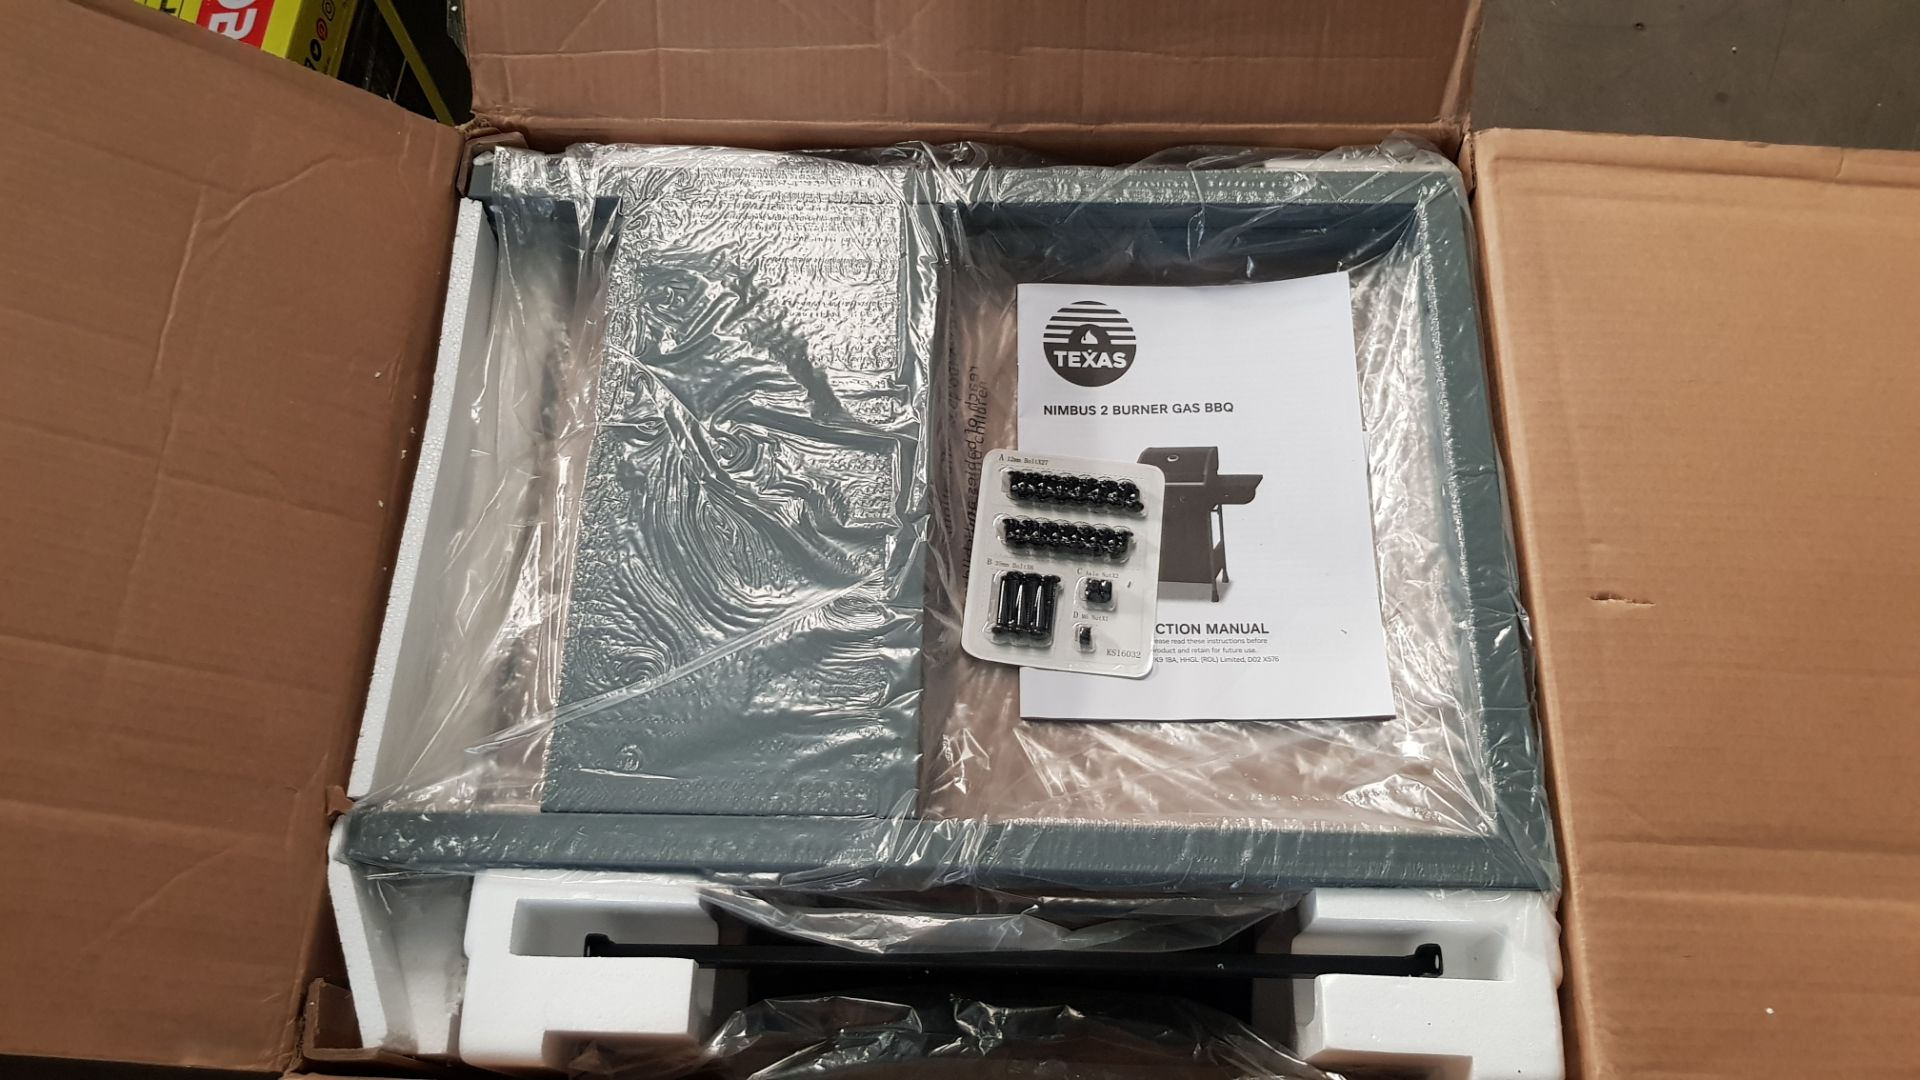 (P3) 1x Texas Nimbus 2 Burner Gas BBQ. Item Appears As New, In Original Packaging With Fixings See - Image 4 of 4